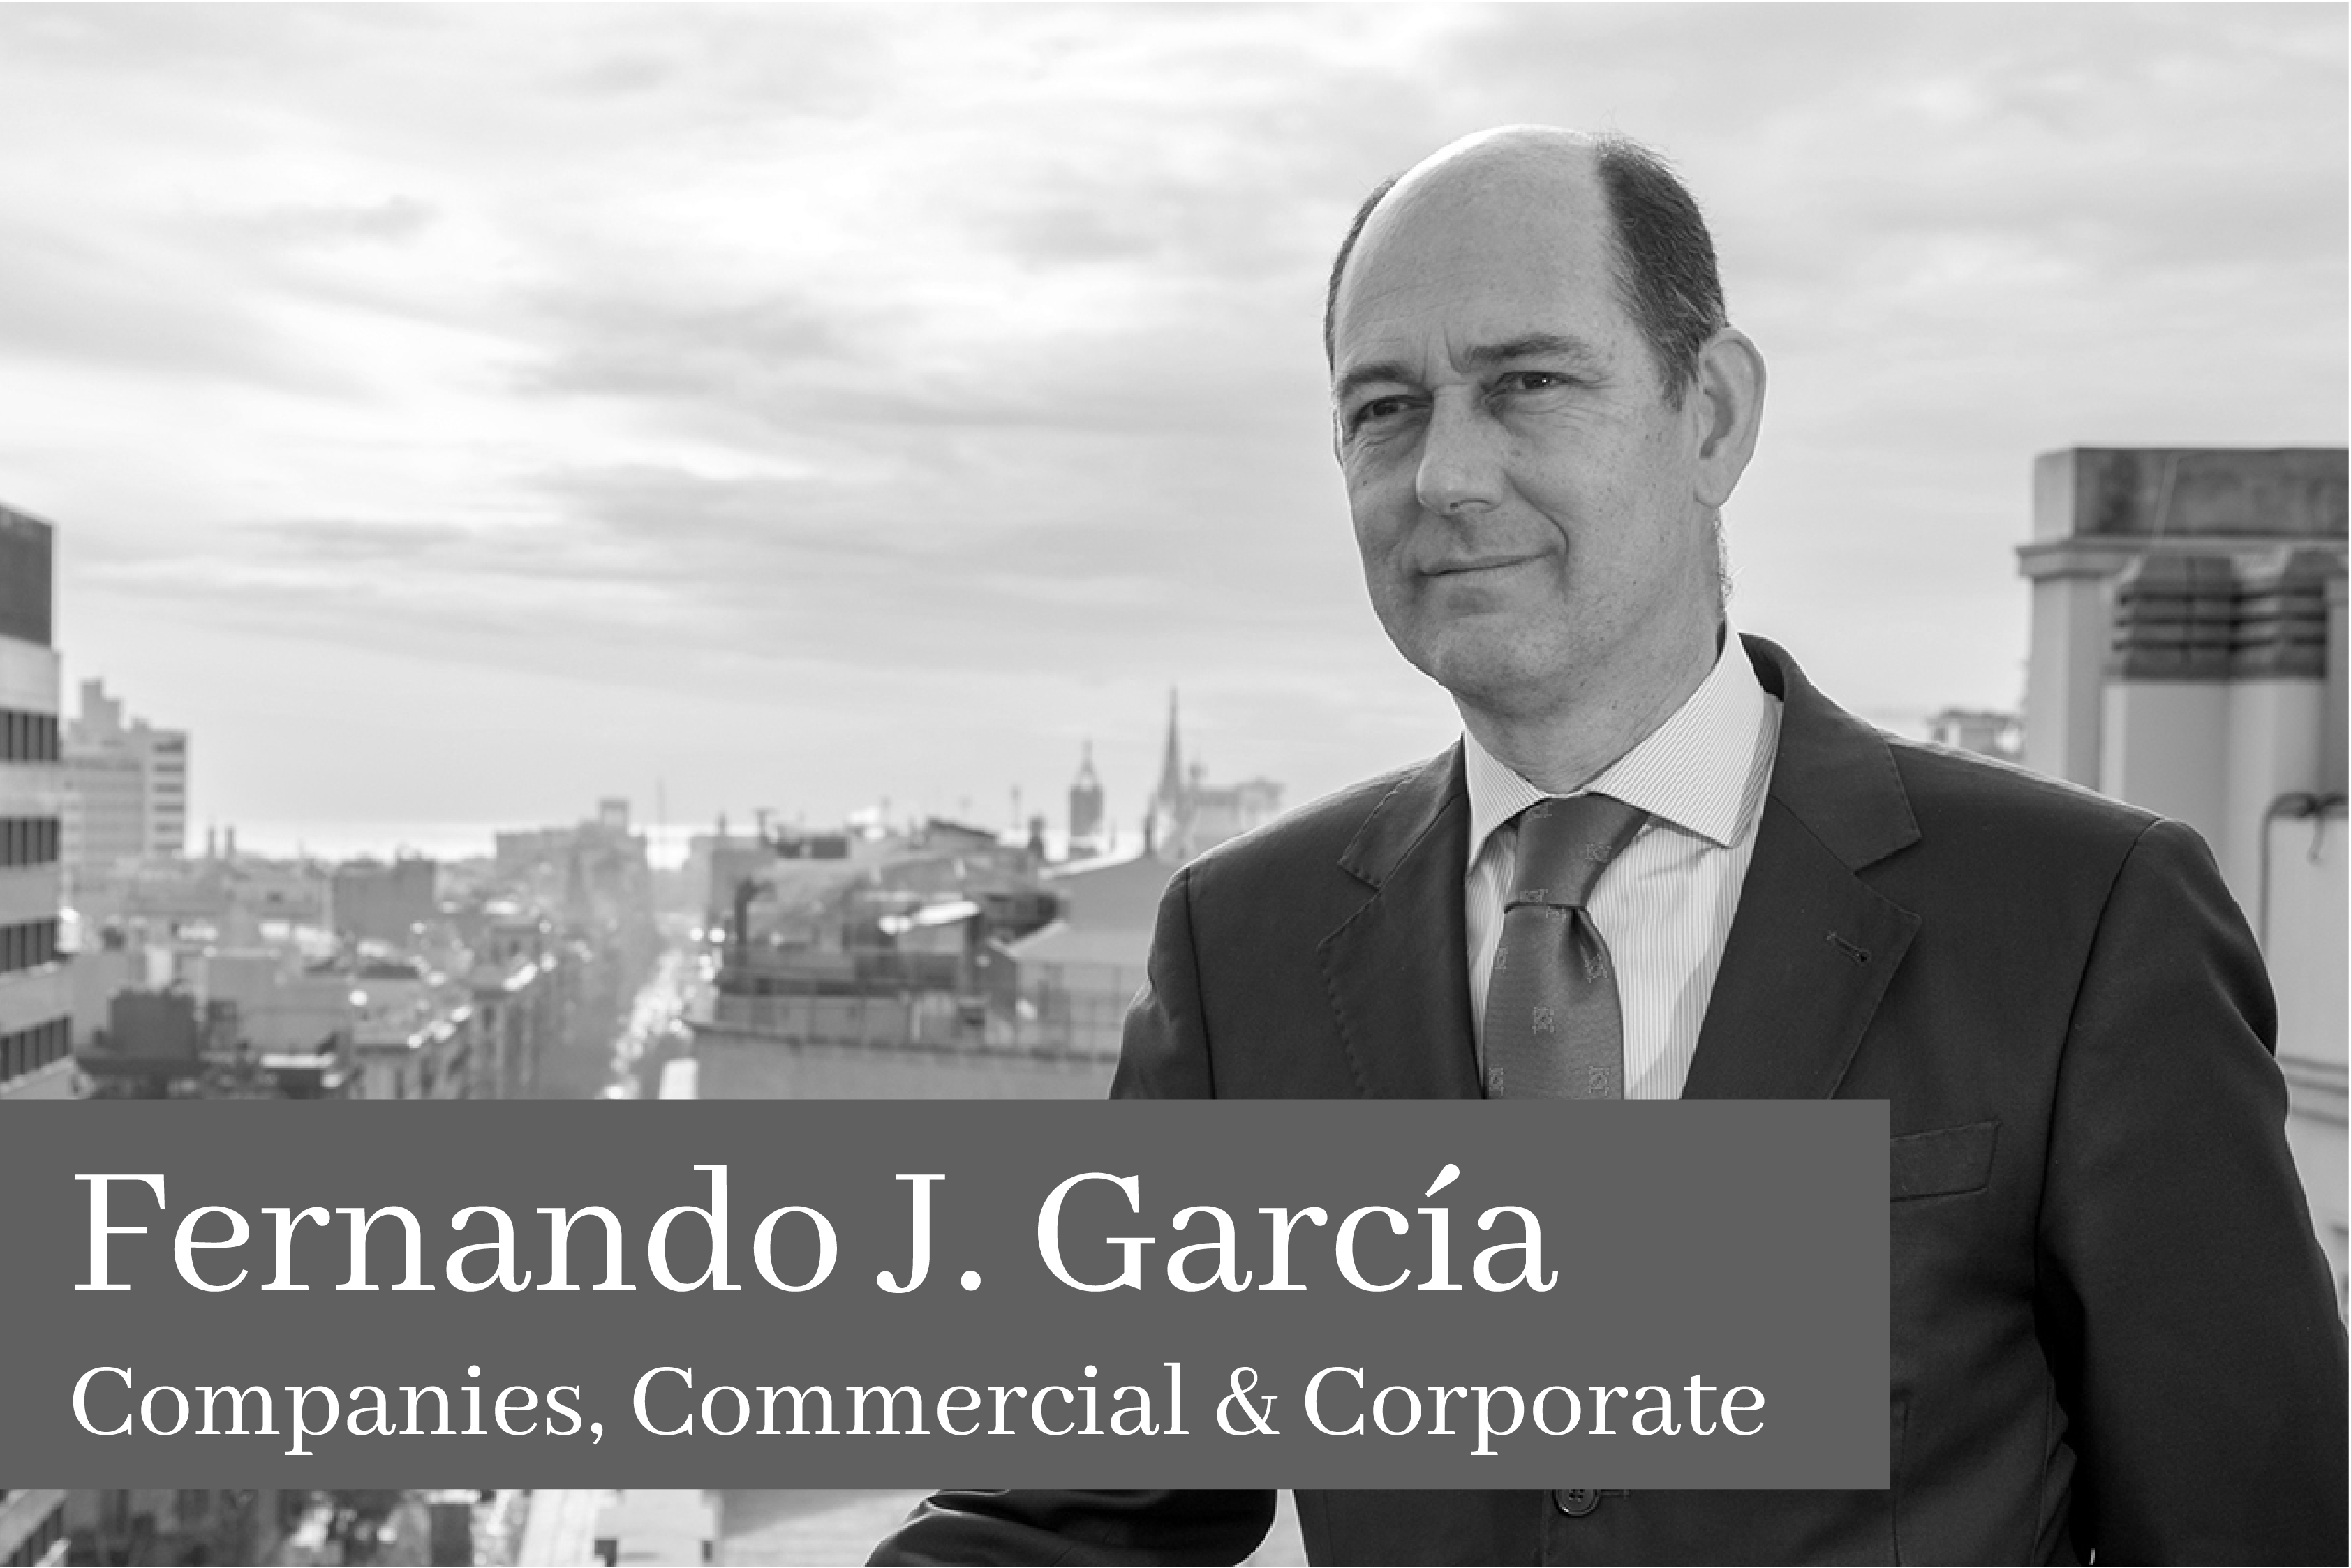 Fernando J. García Martin Companoes Commercial & Corporate